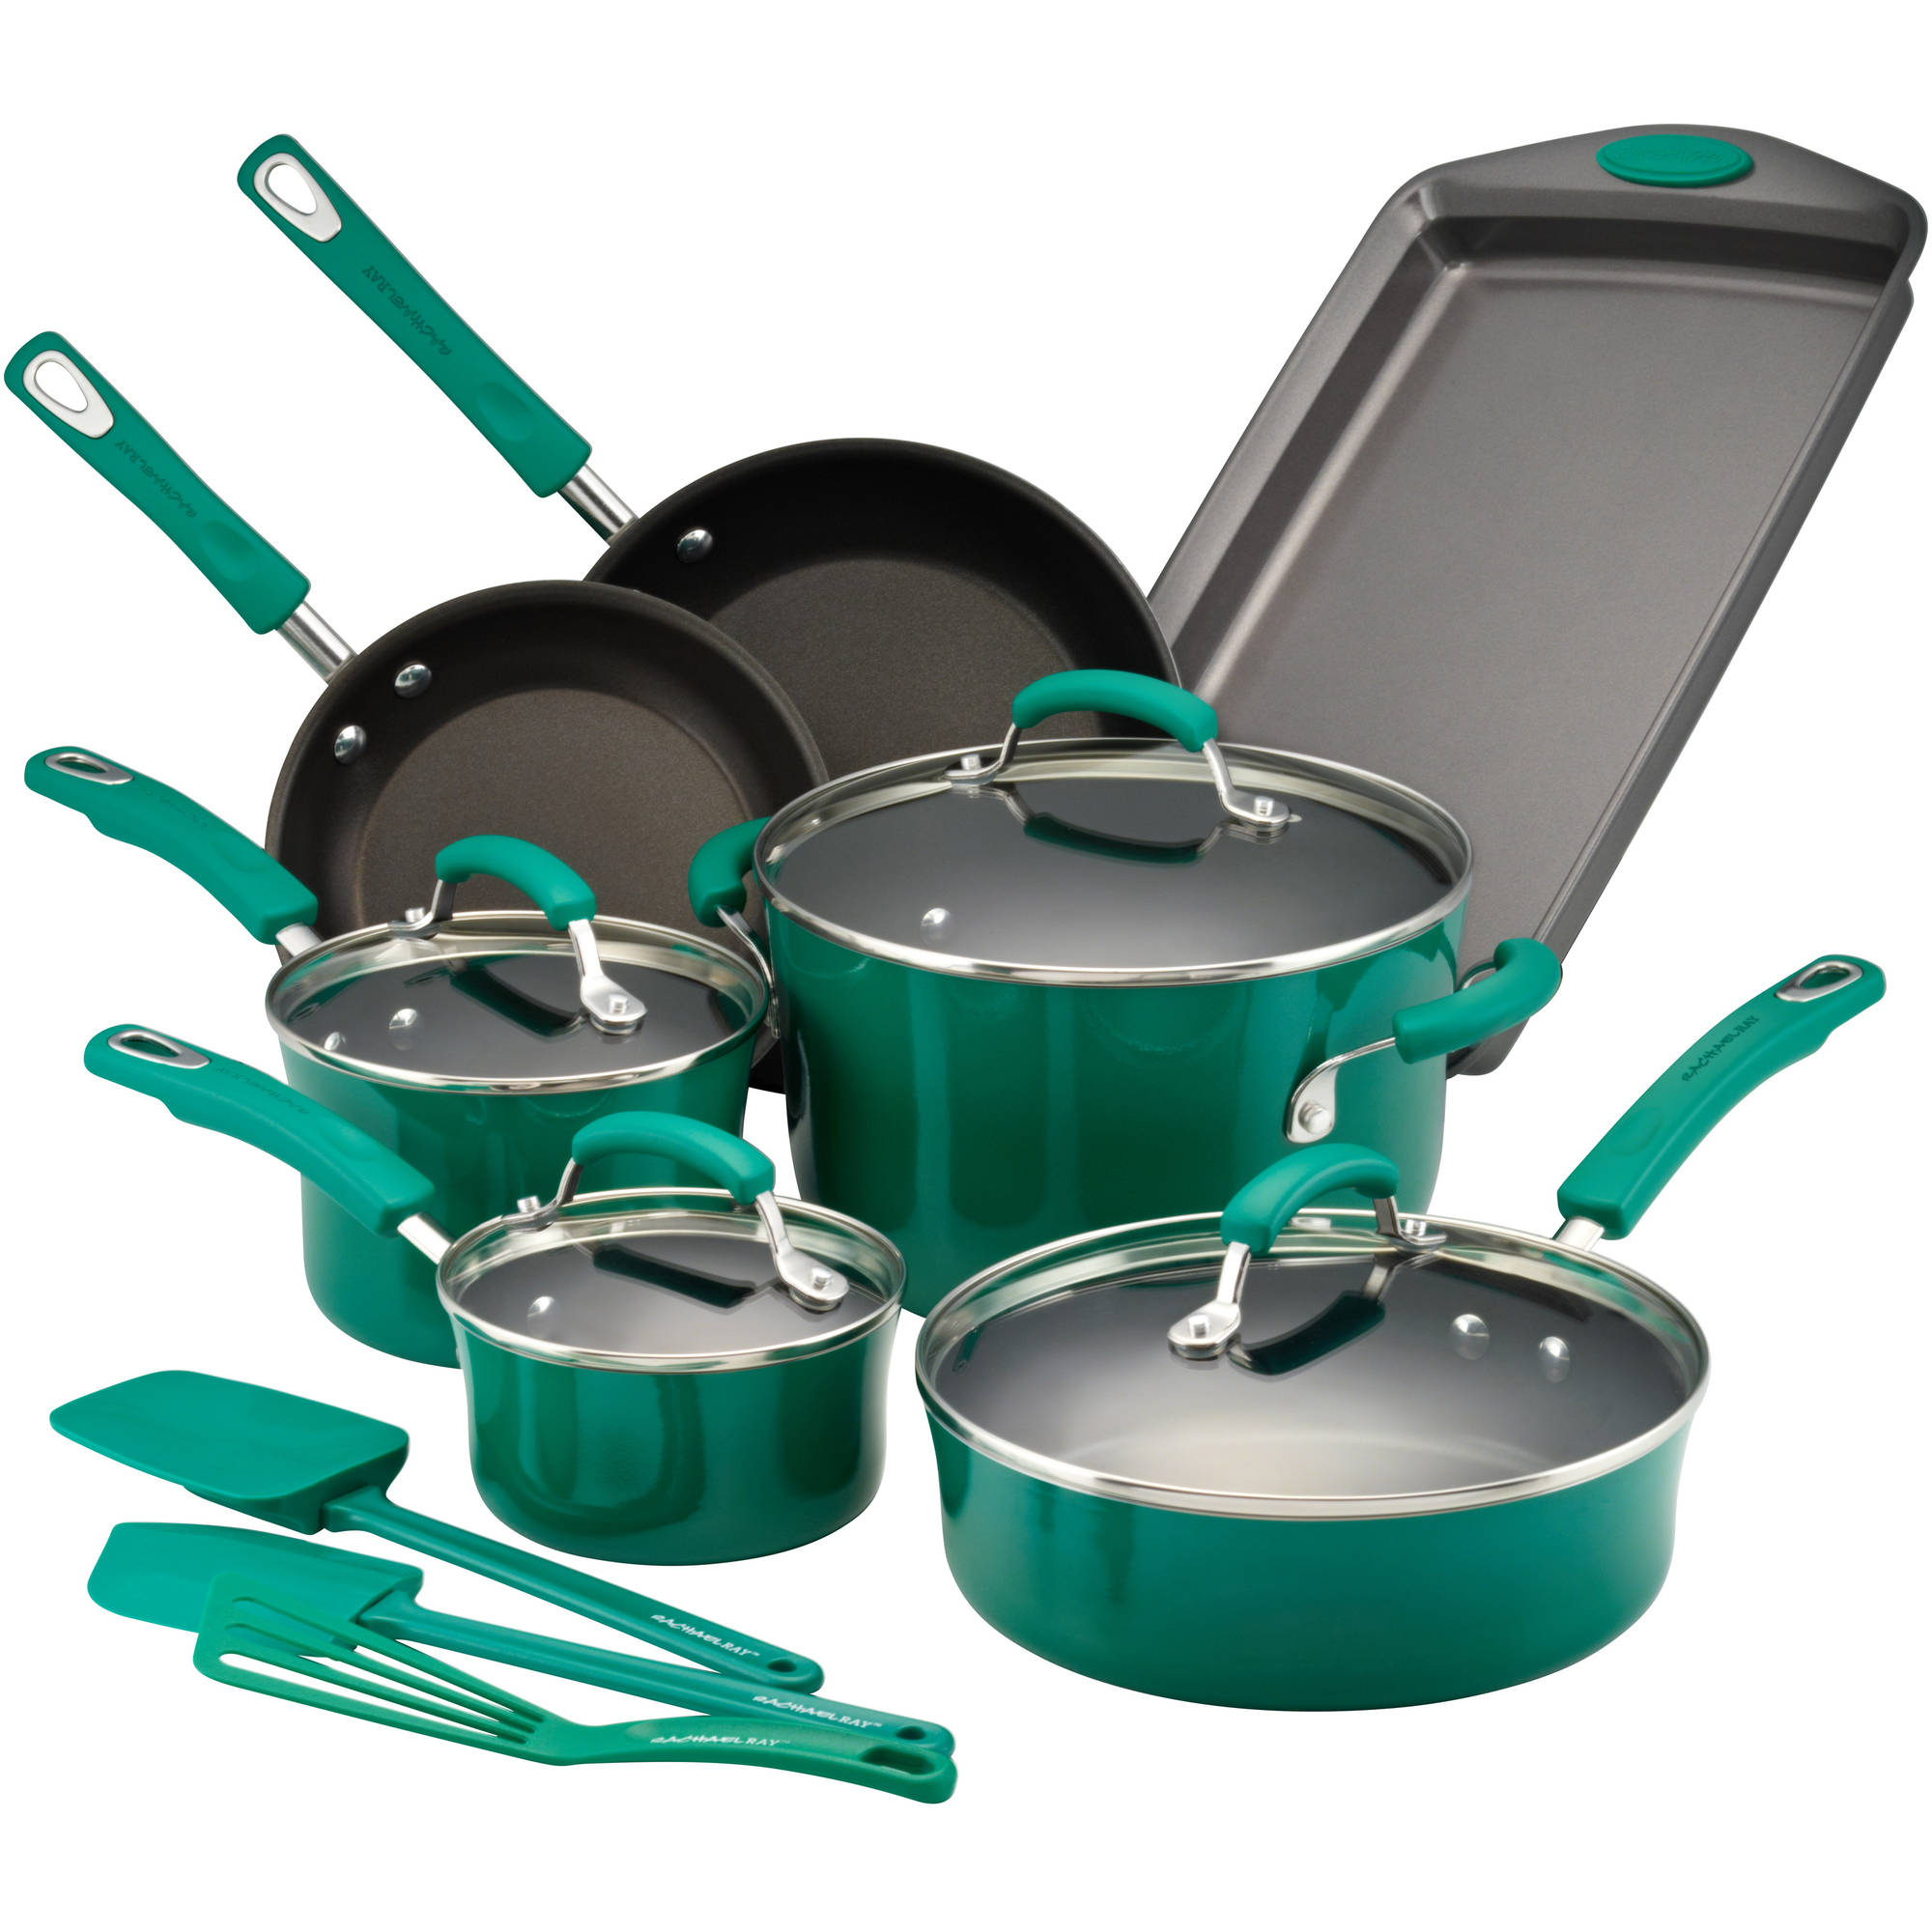 Rachael Ray Hard Porcelain Enamel Nonstick 14-Piece Cookware Set, Fennel Gradient